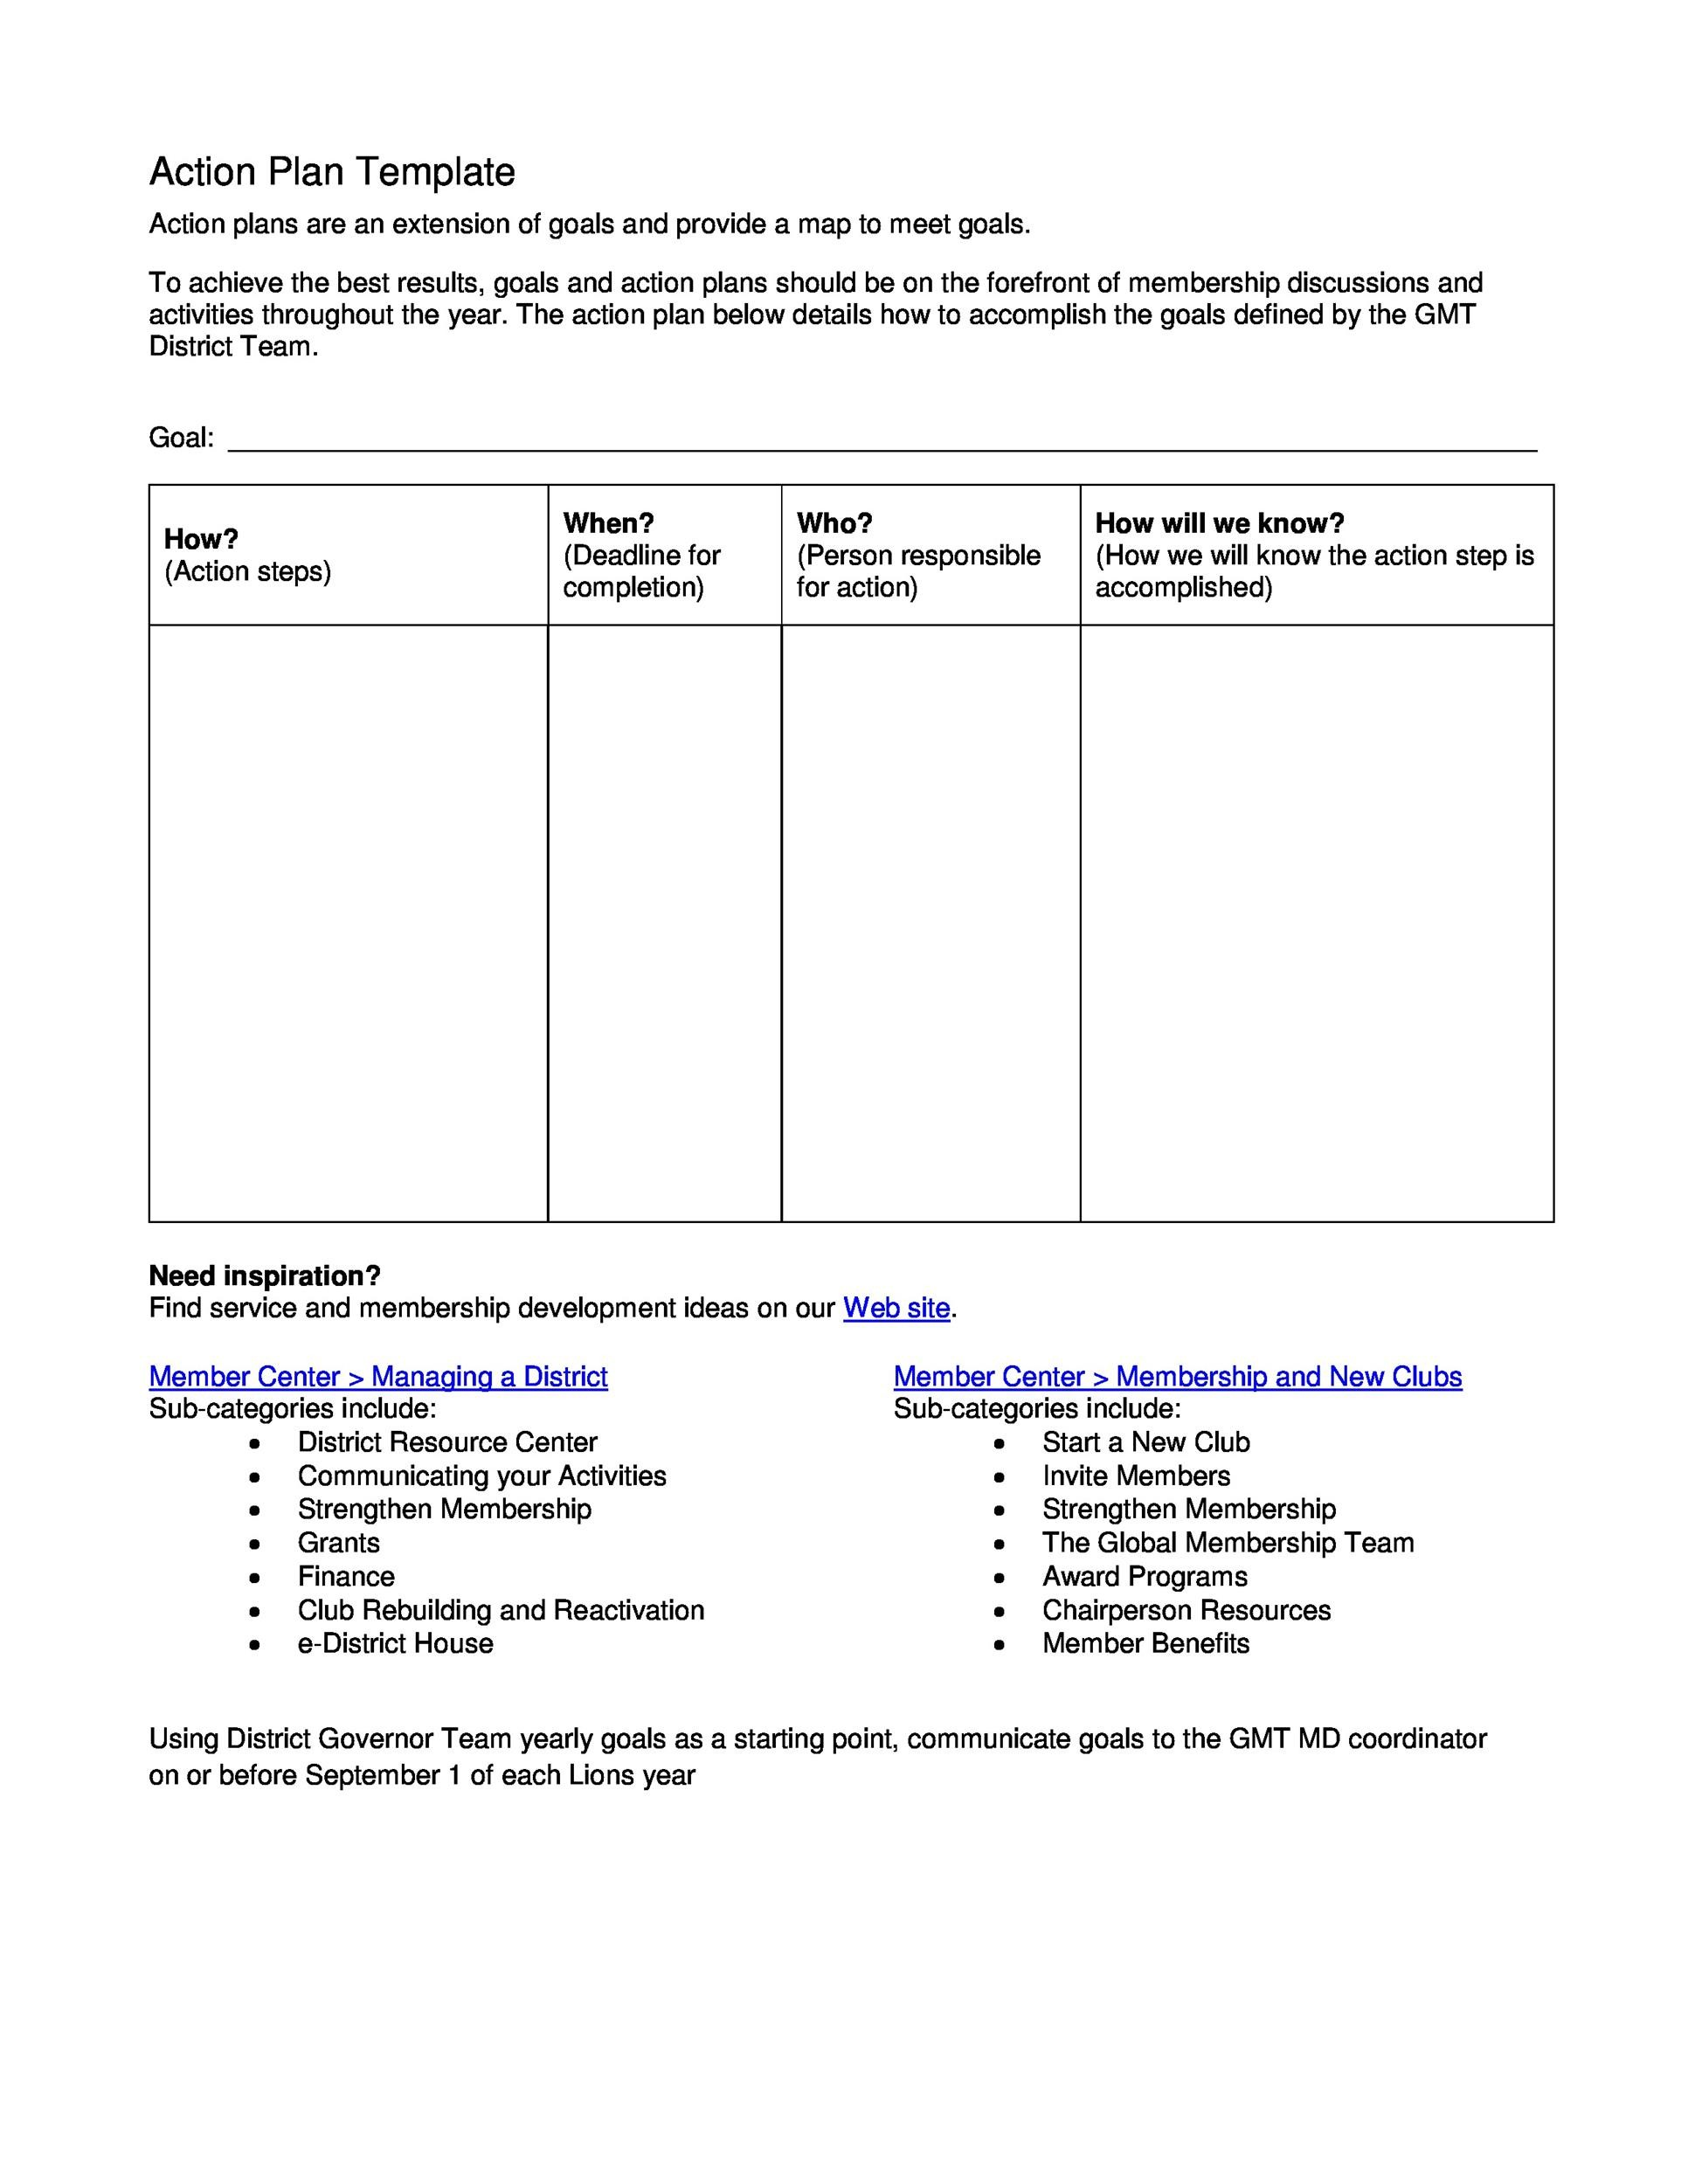 Free Action Plan Templates Corrective Emergency Business - Business emergency plan template